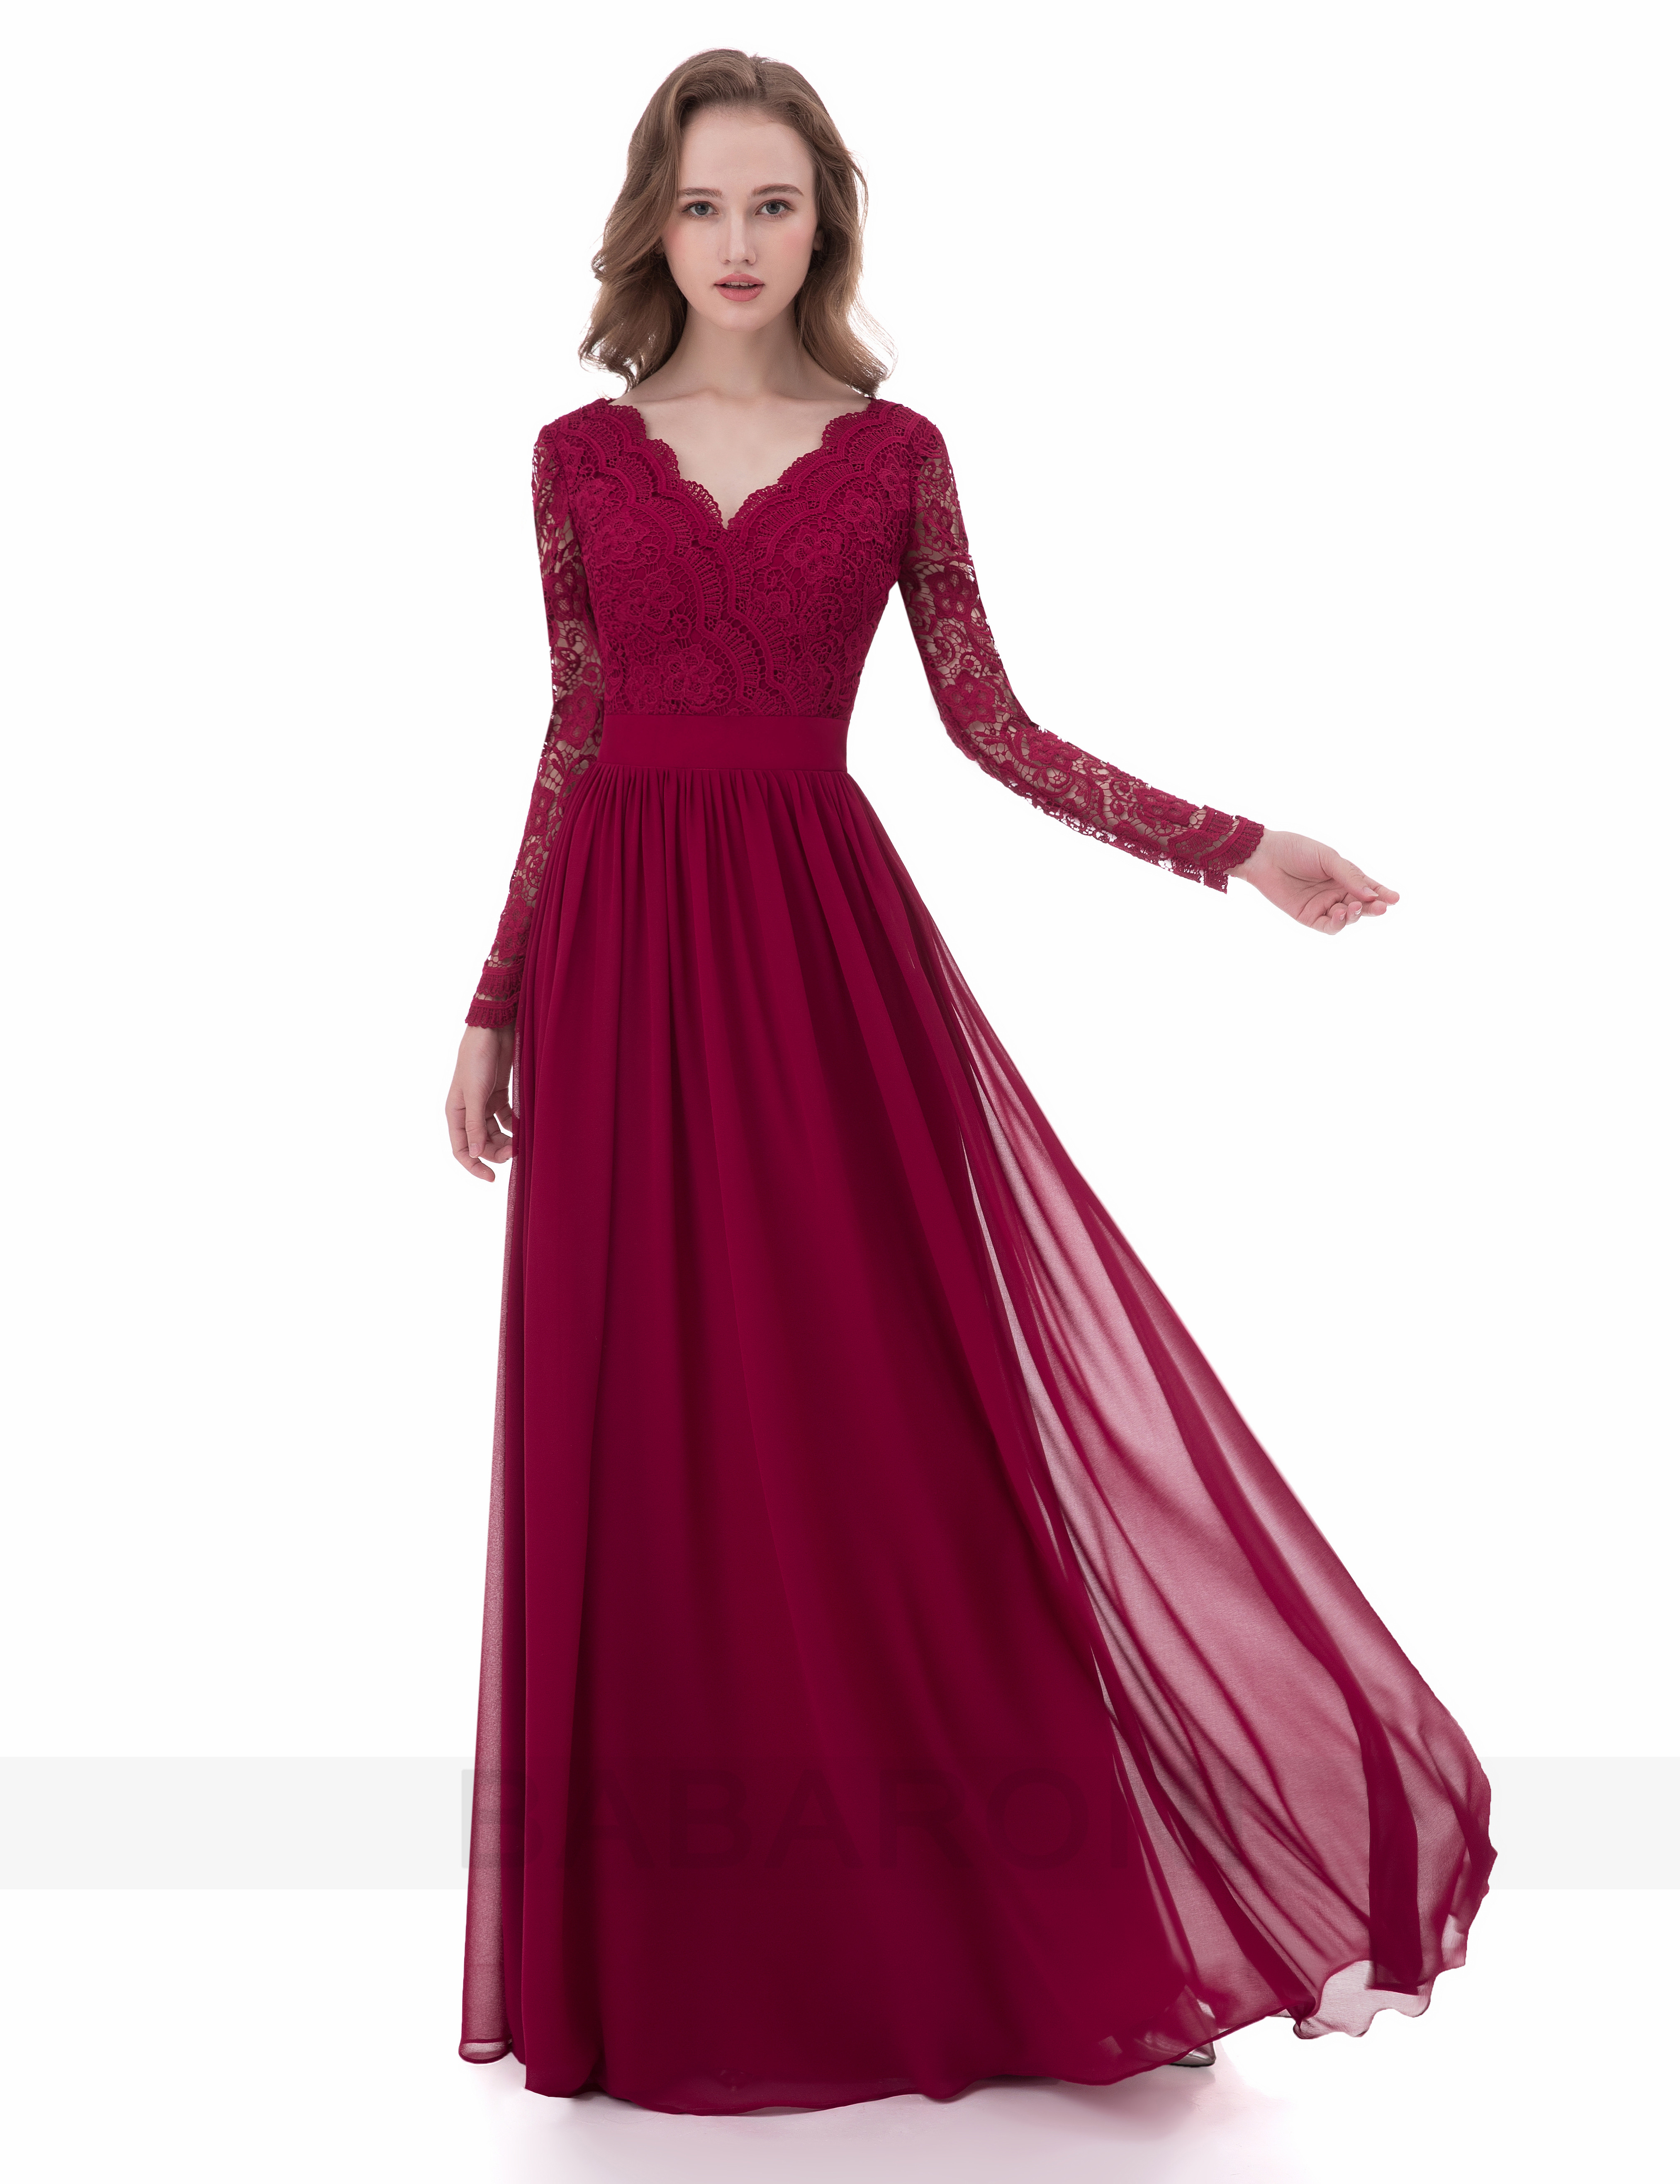 All styles of bridesmaid dresses affordable prices best quality 64 colors ombrellifo Choice Image